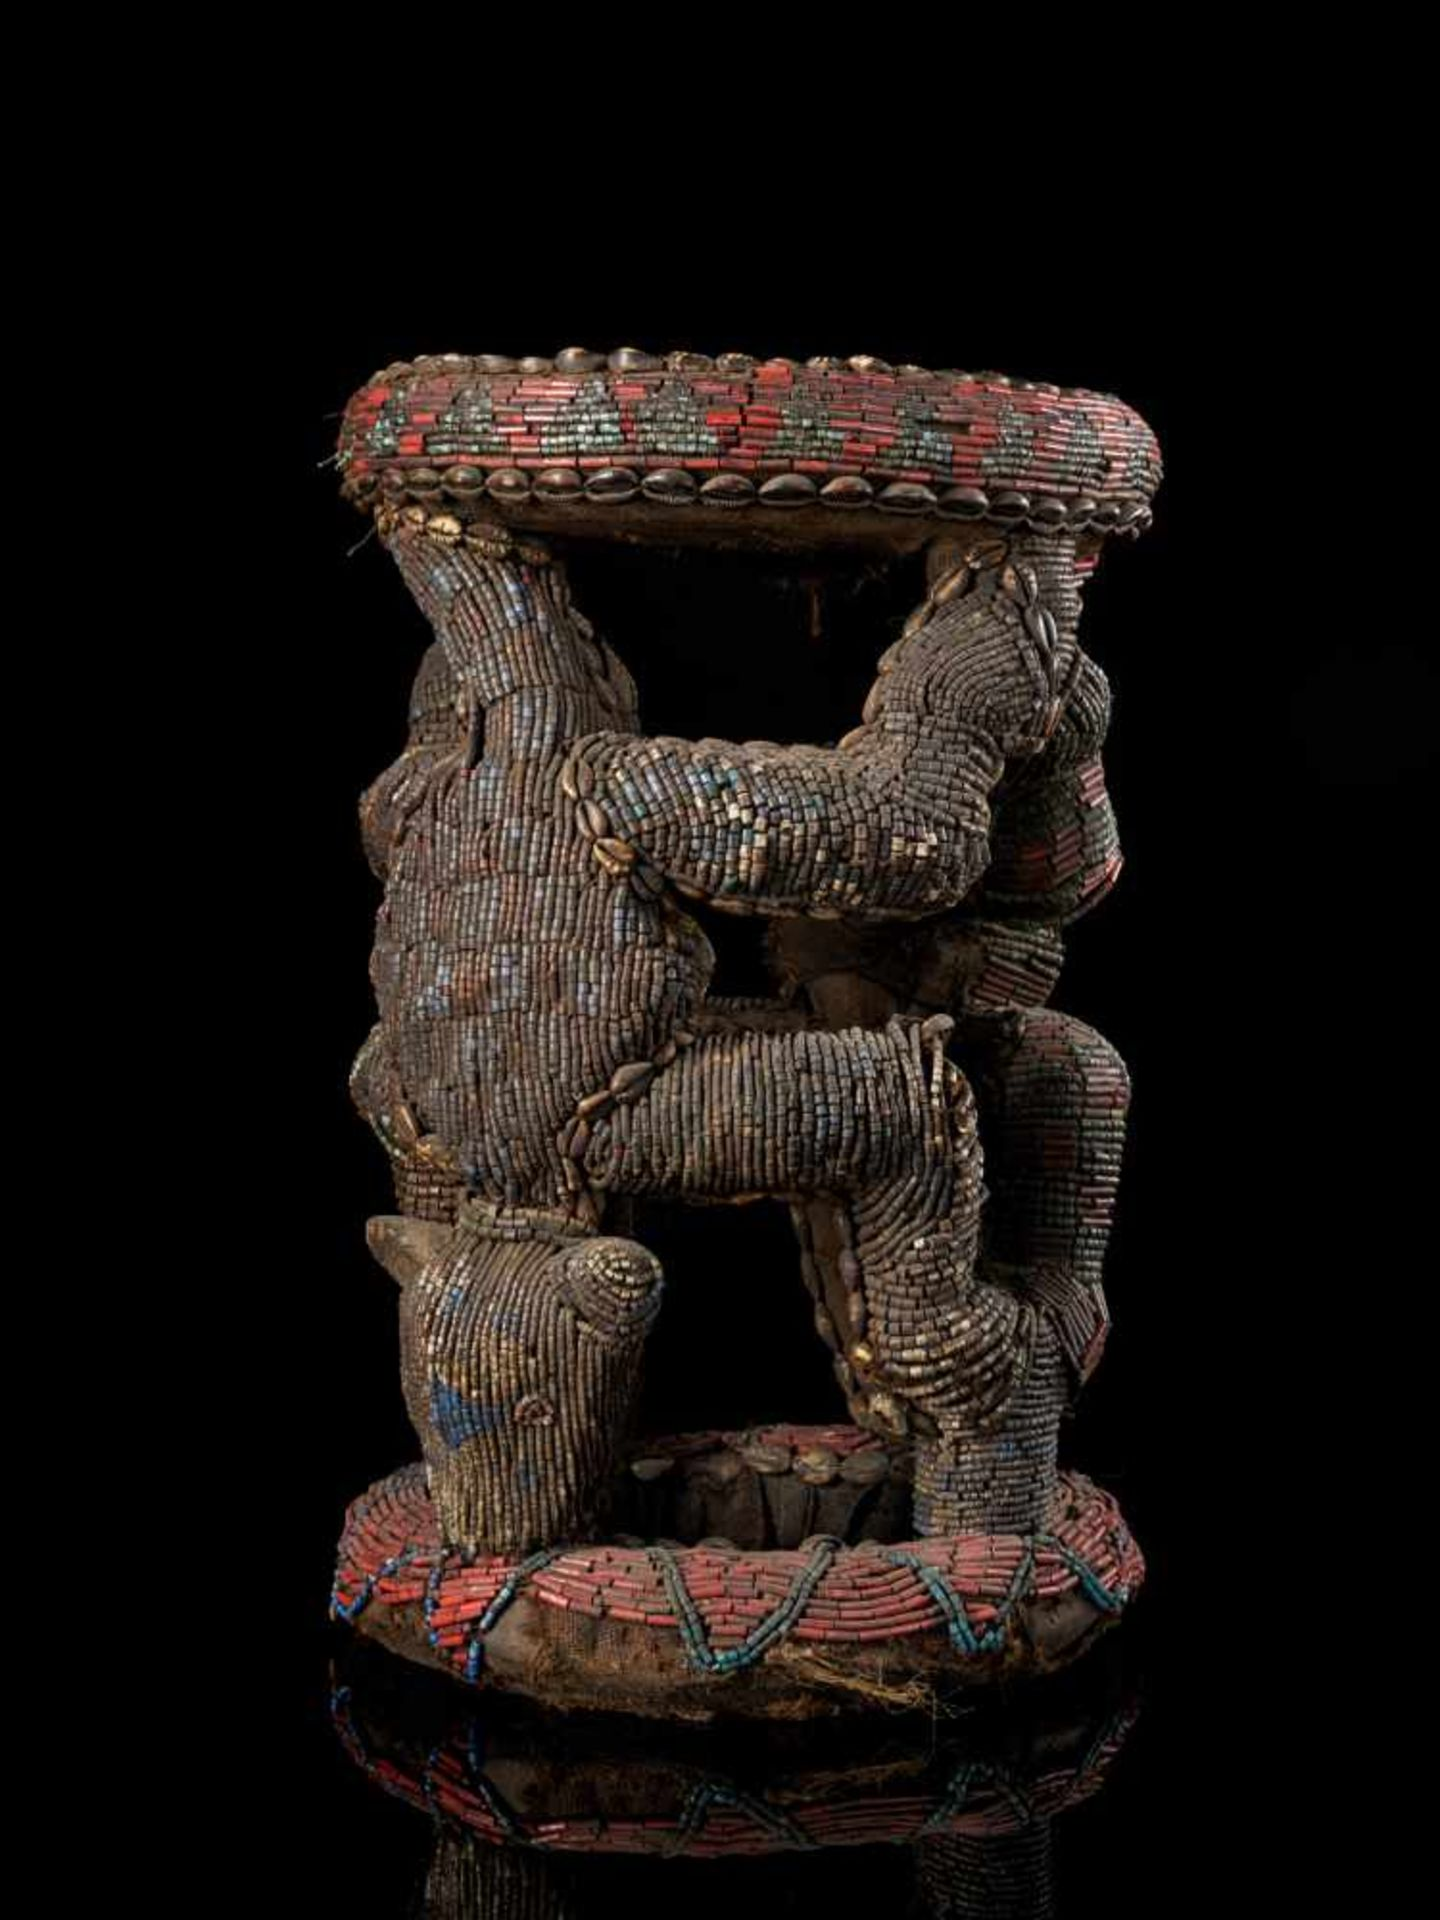 Beaded Royal Stool Supported By Two Leopards - Tribal ArtThis stunning stool has a round base and - Bild 3 aus 5